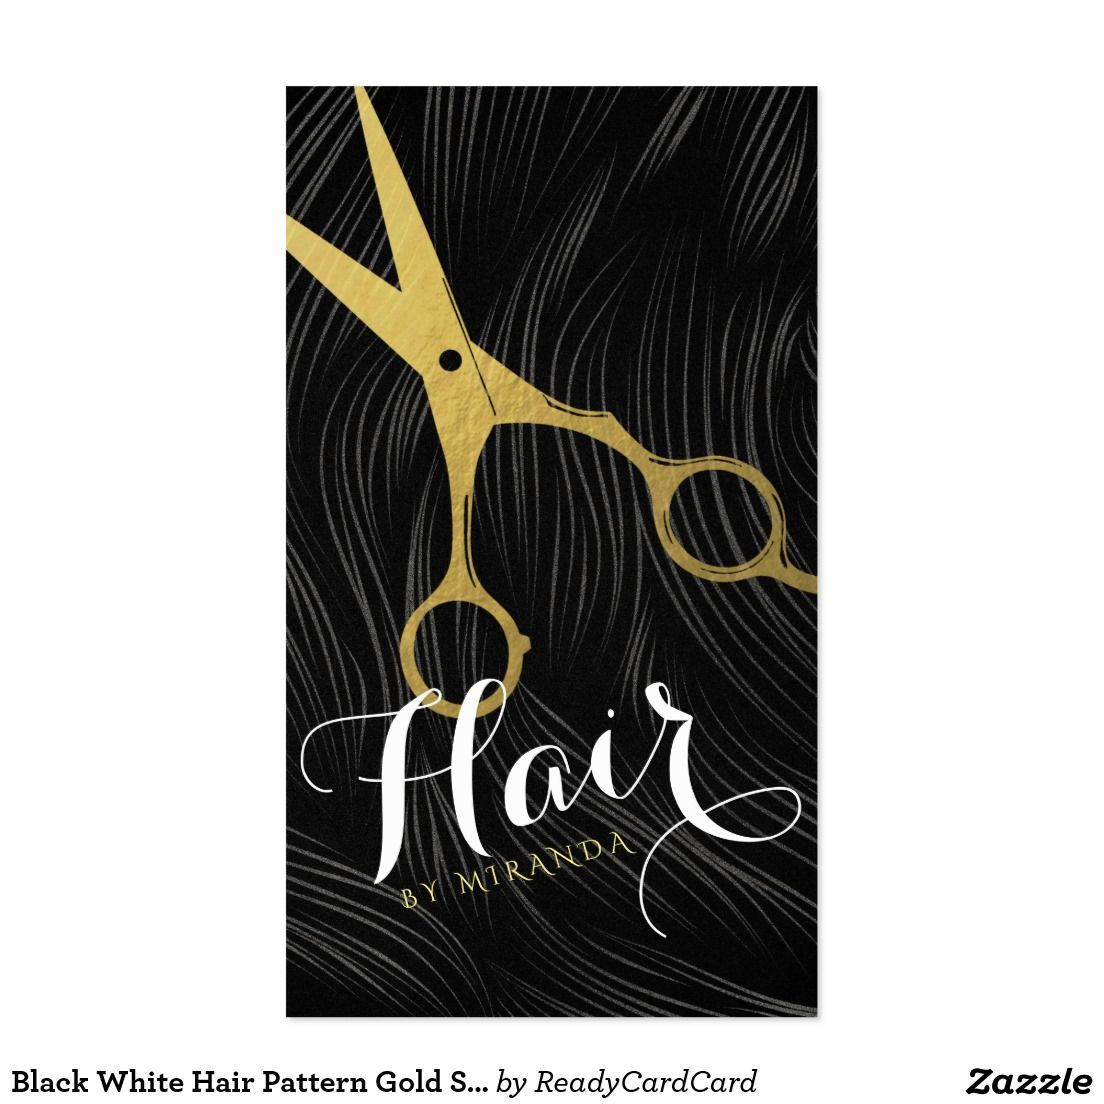 Black White Hair Pattern Gold Scissors Hairstylist Business Card ...